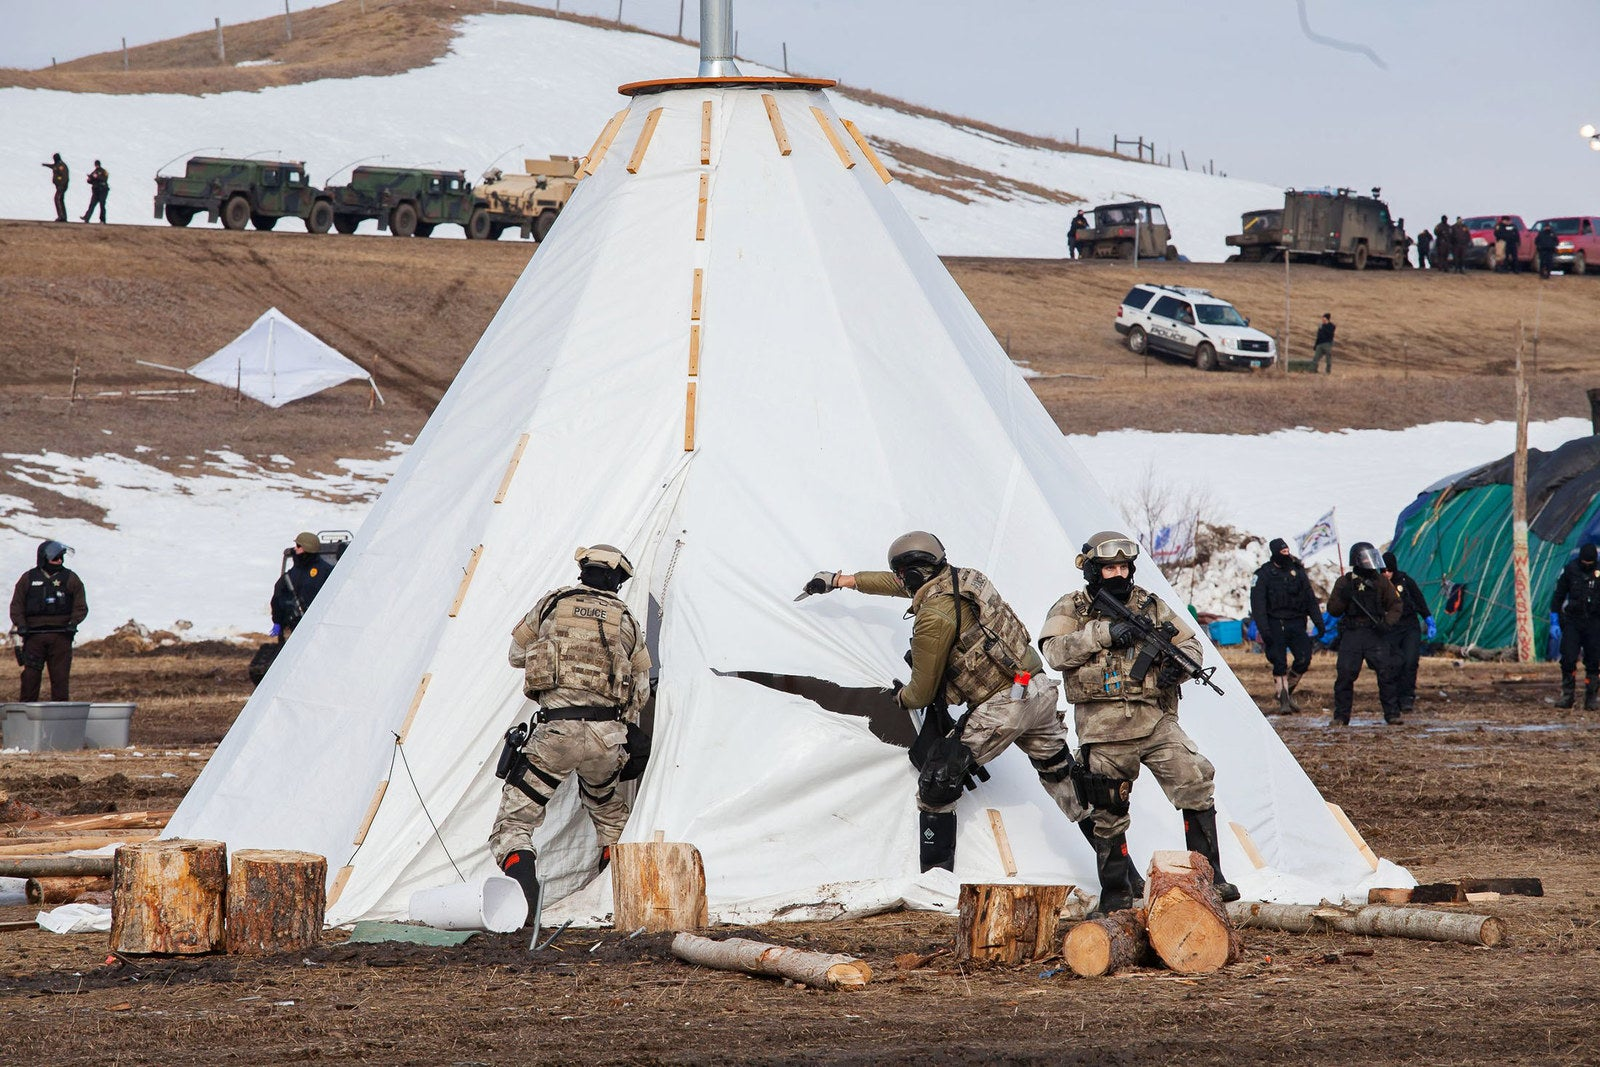 Police move in to clear the Oceti Sakowin camp at the Standing Rock protest site in North Dakota on Feb. 23.